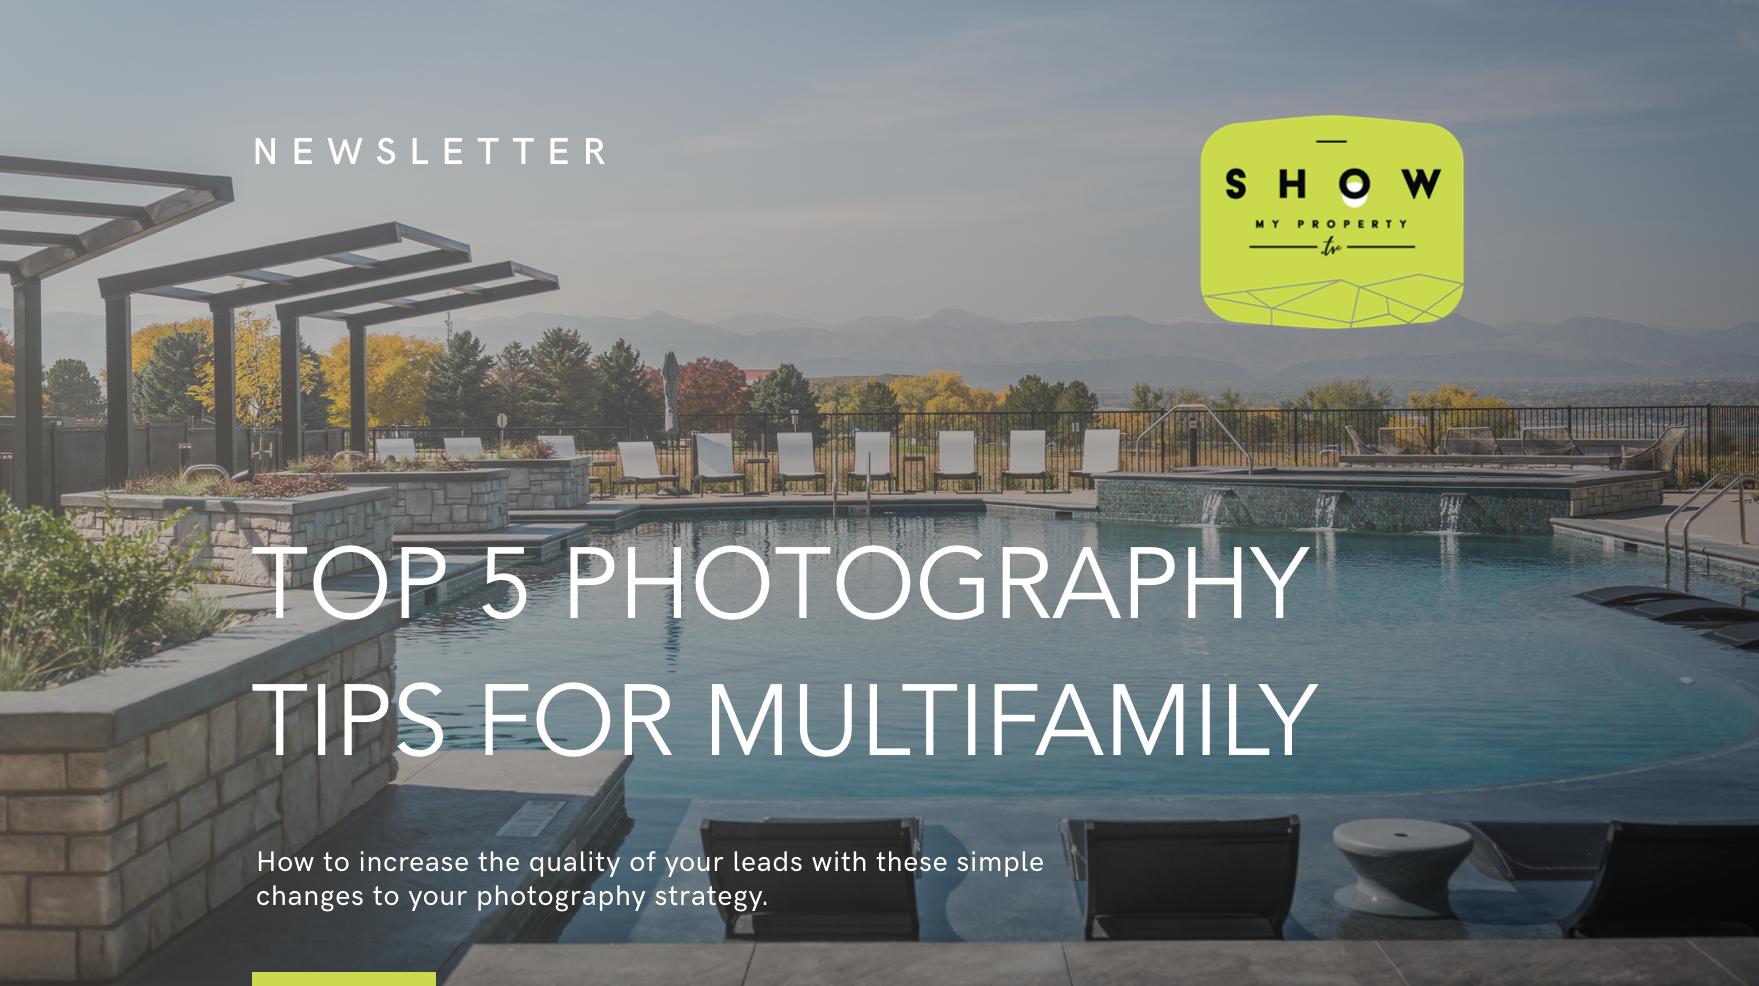 Top 5 Photography Tips for Multifamily